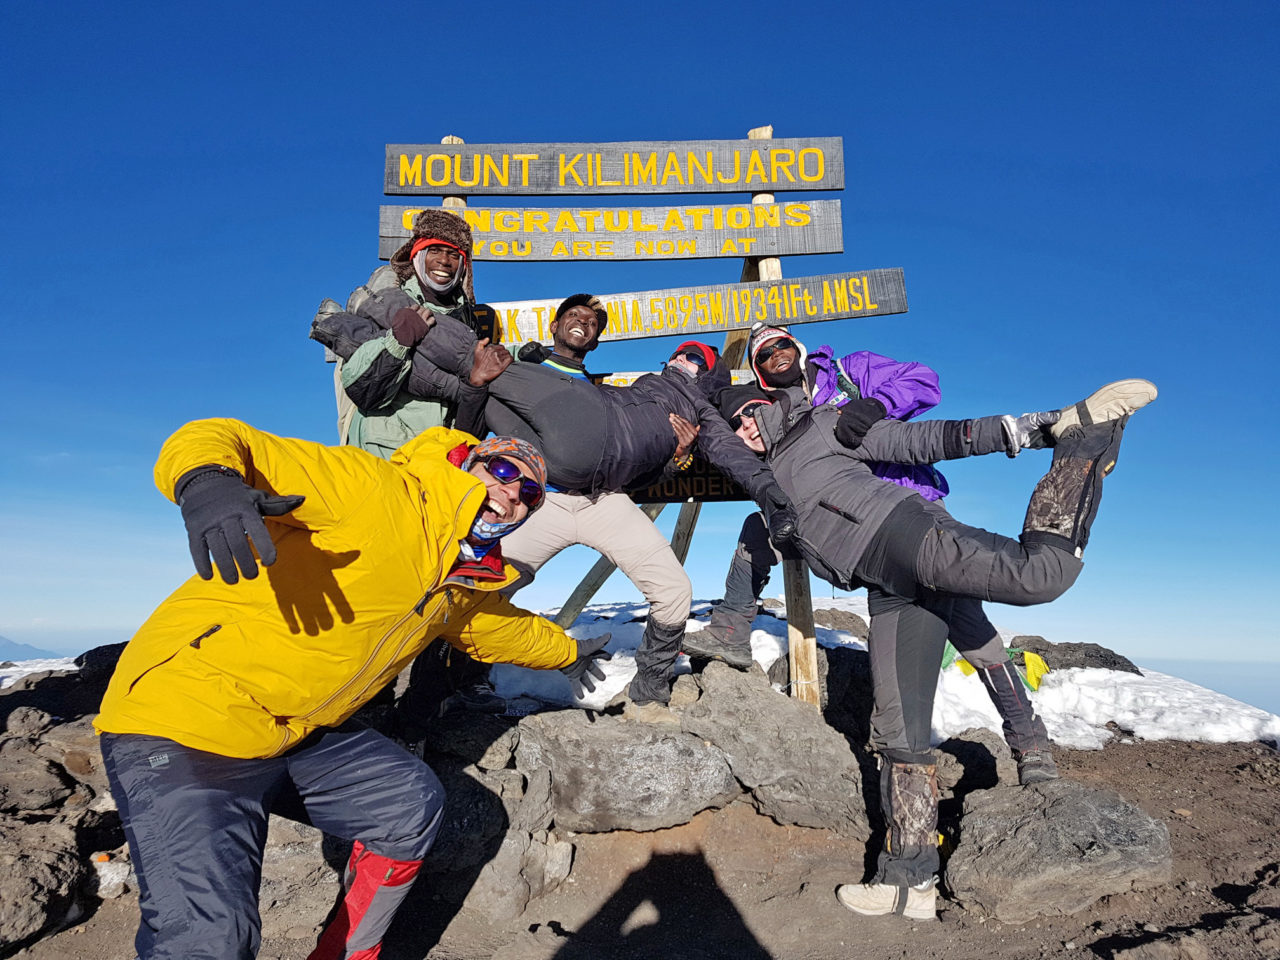 Foad Davani, BA'13, MAS'14 (Van), and his climbing guides and crew celebrate reaching the top of Mount Kilimanjaro